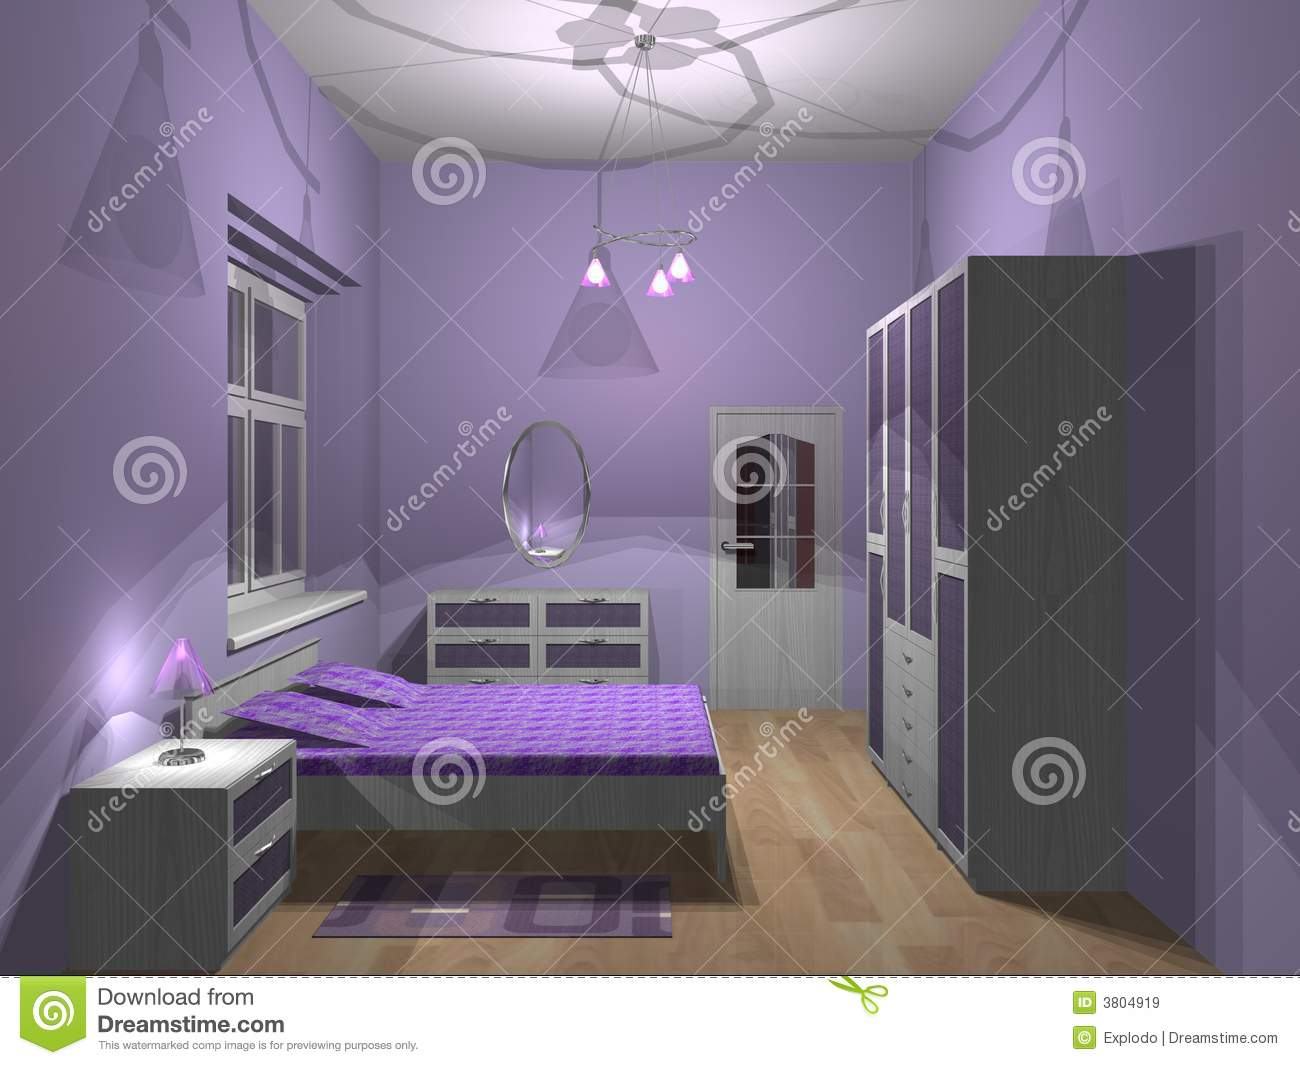 Purple Bedroom Royalty Free Stock Images - Image: 3804919